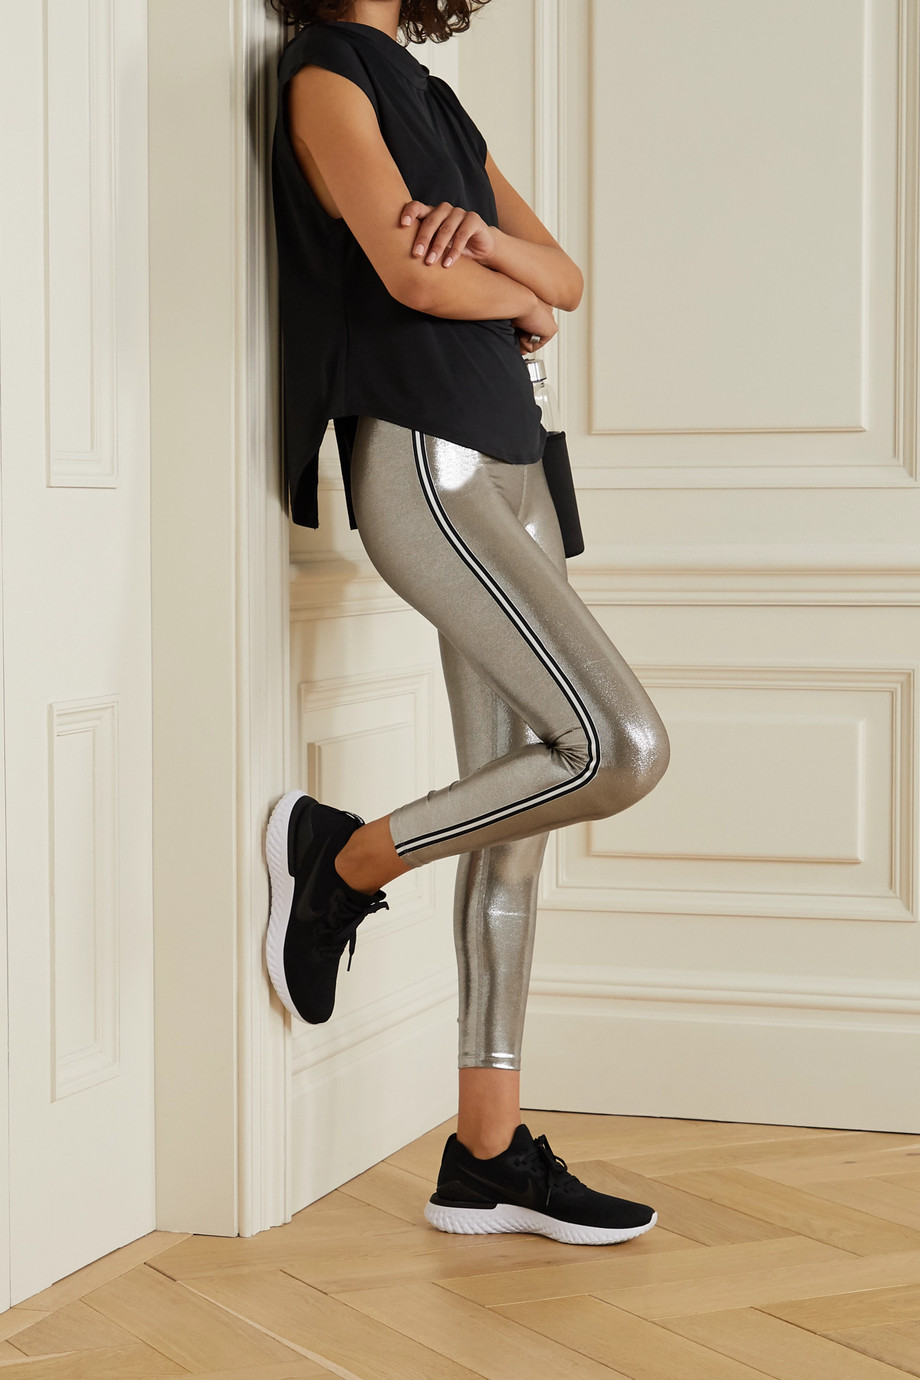 Heroine Sport Jetset striped metallic stretch leggings